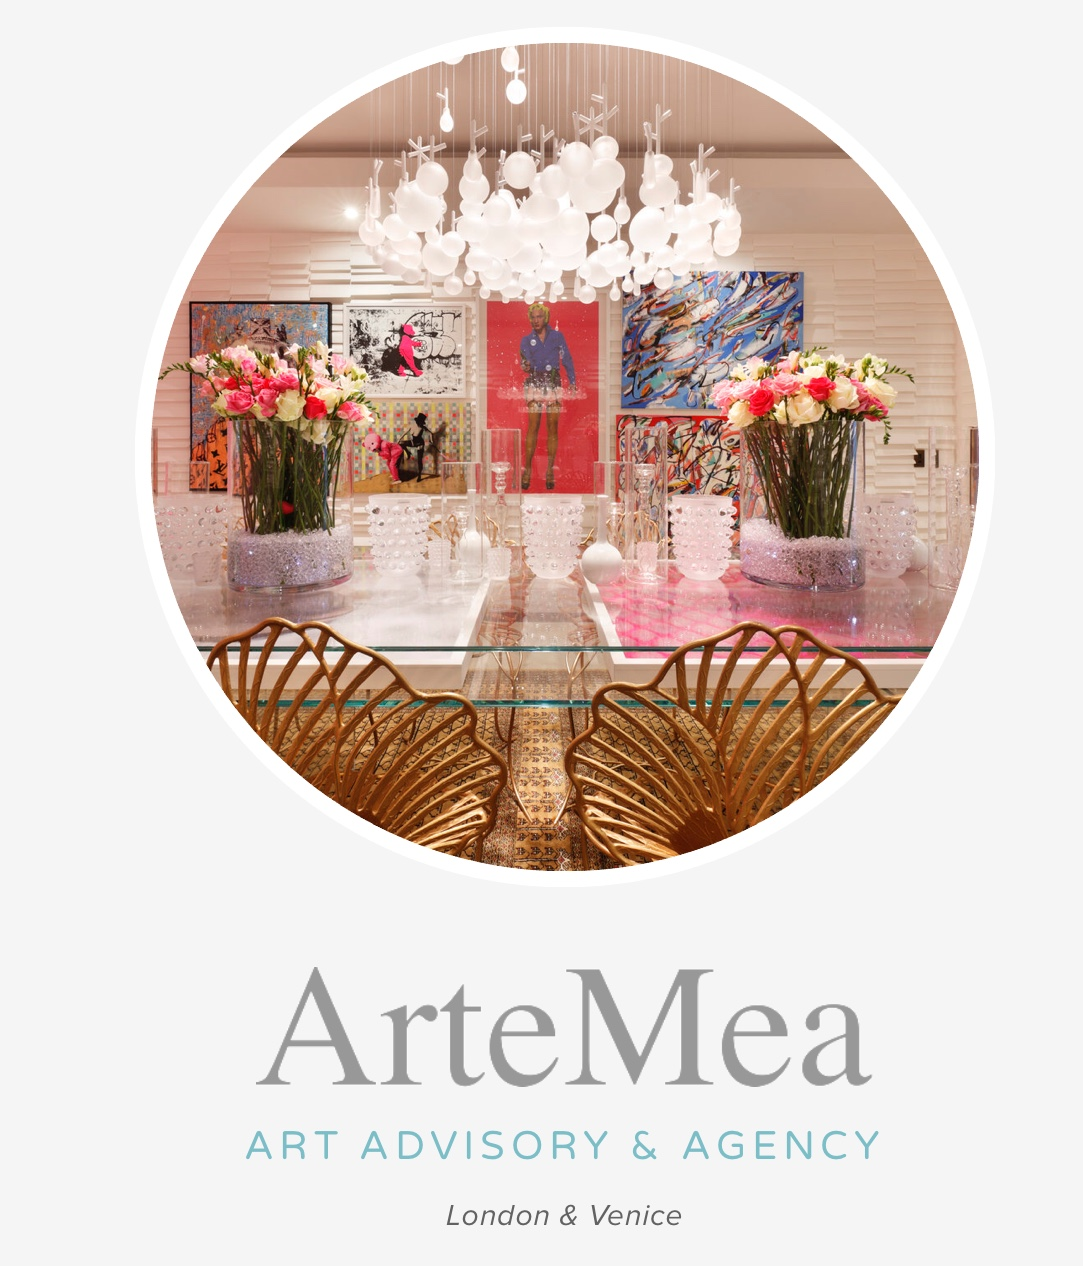 ARTEMEA ART ADVISORY